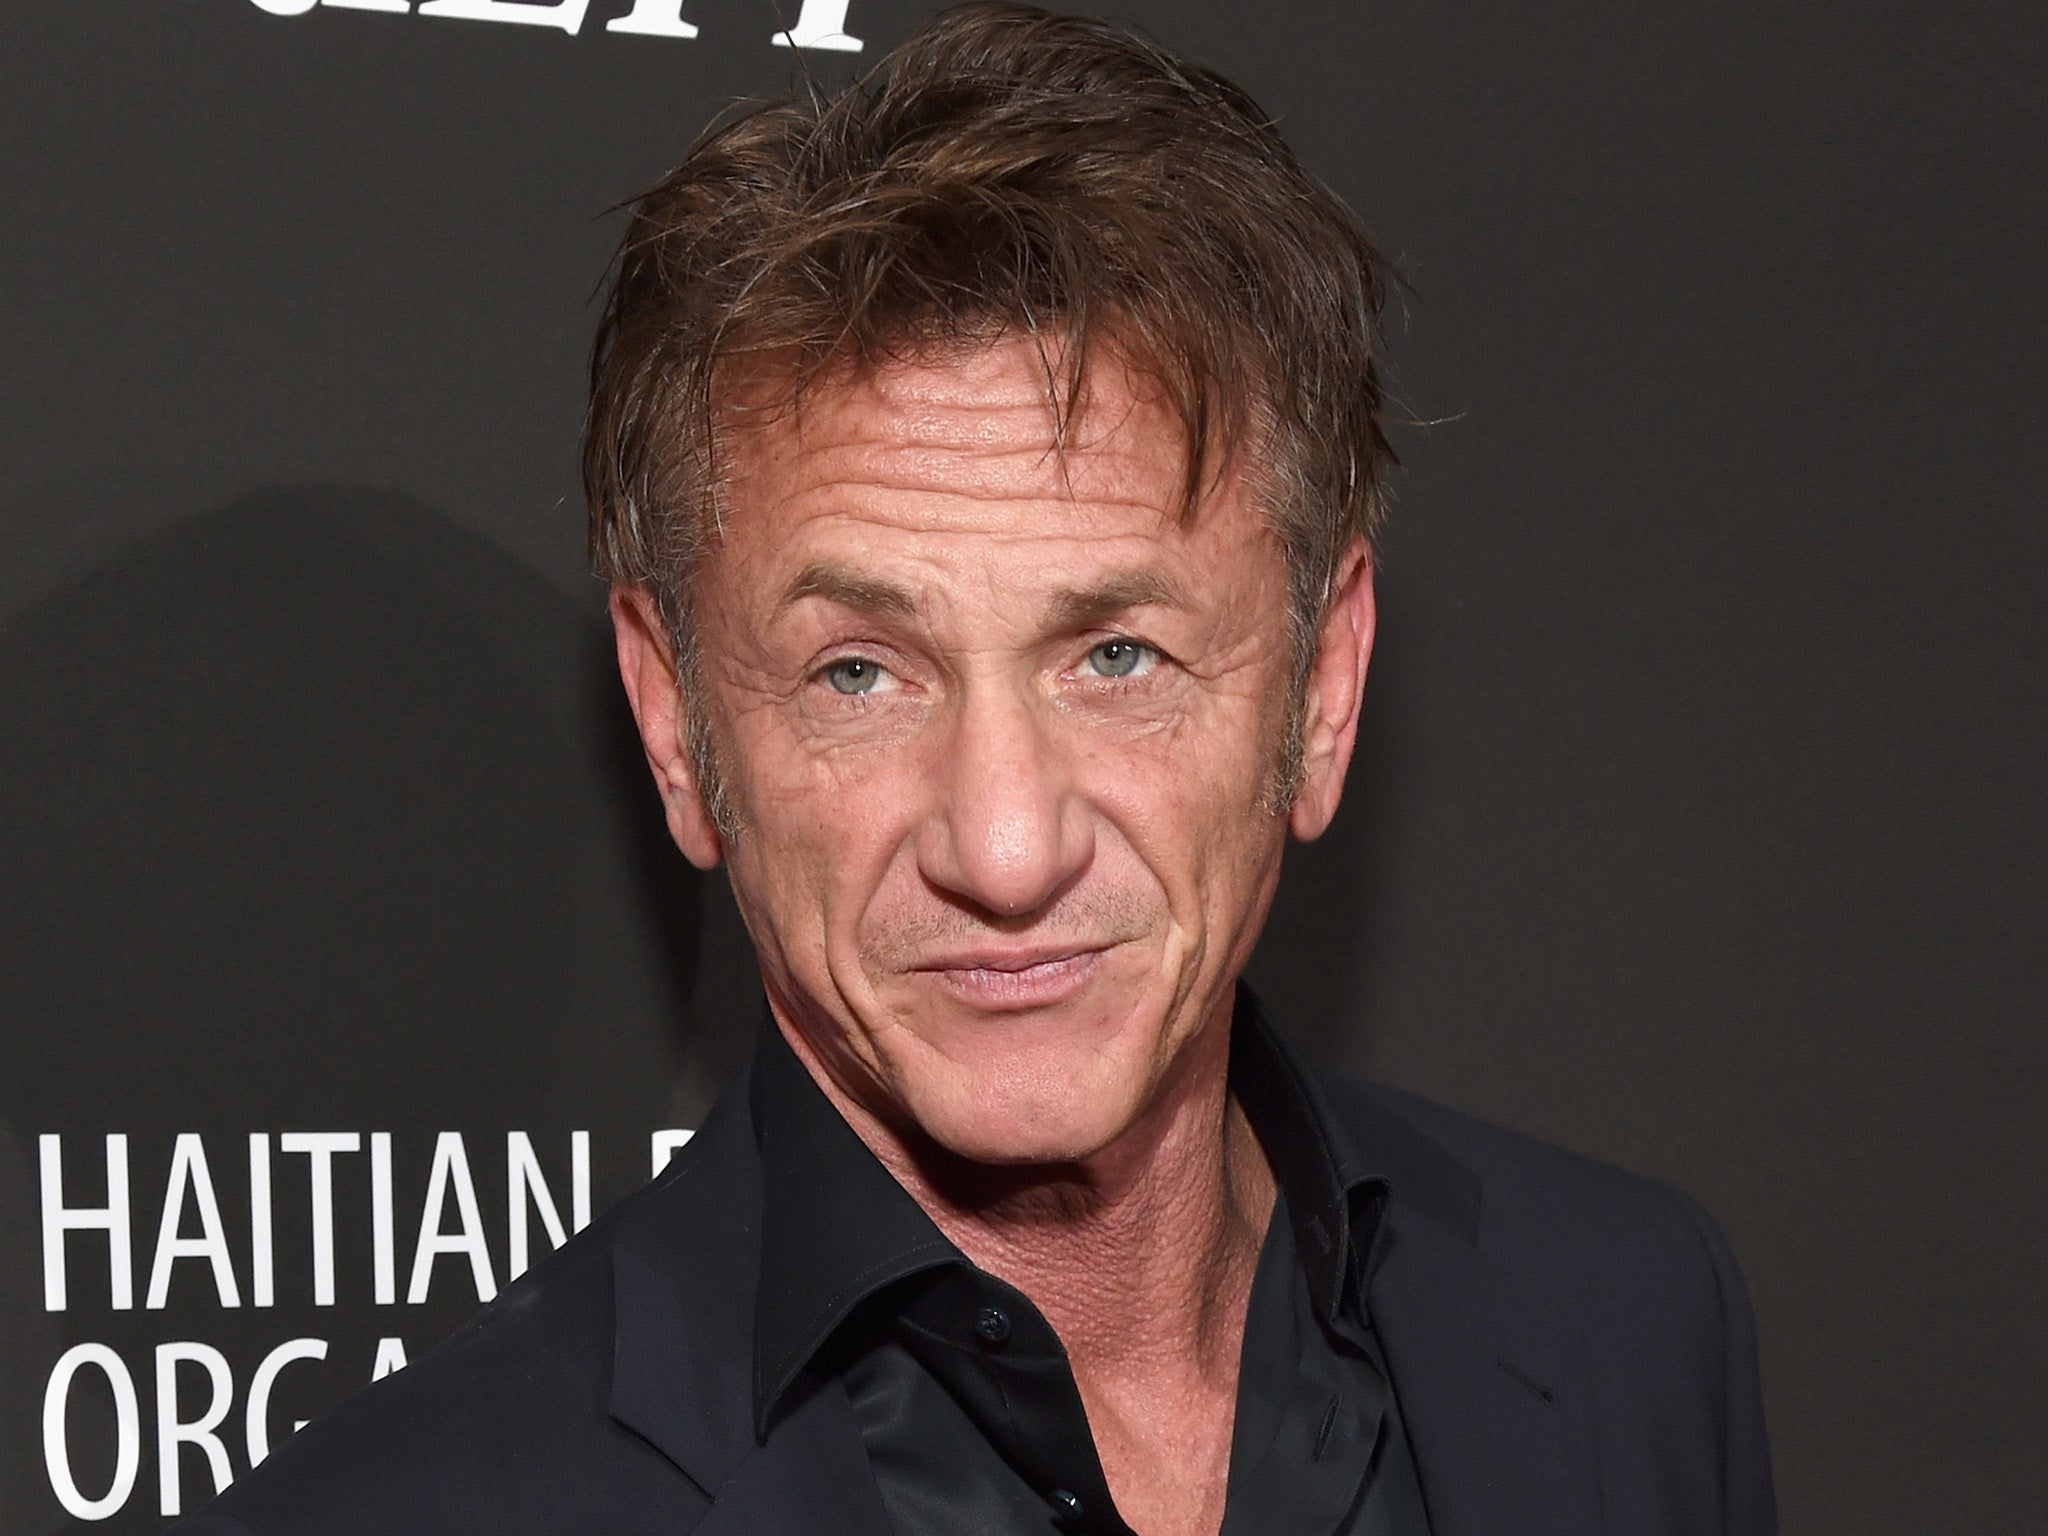 Feature Documentary About Haitian Relief Efforts by Filmmaker Don Hardy Revealed by Sean Penn